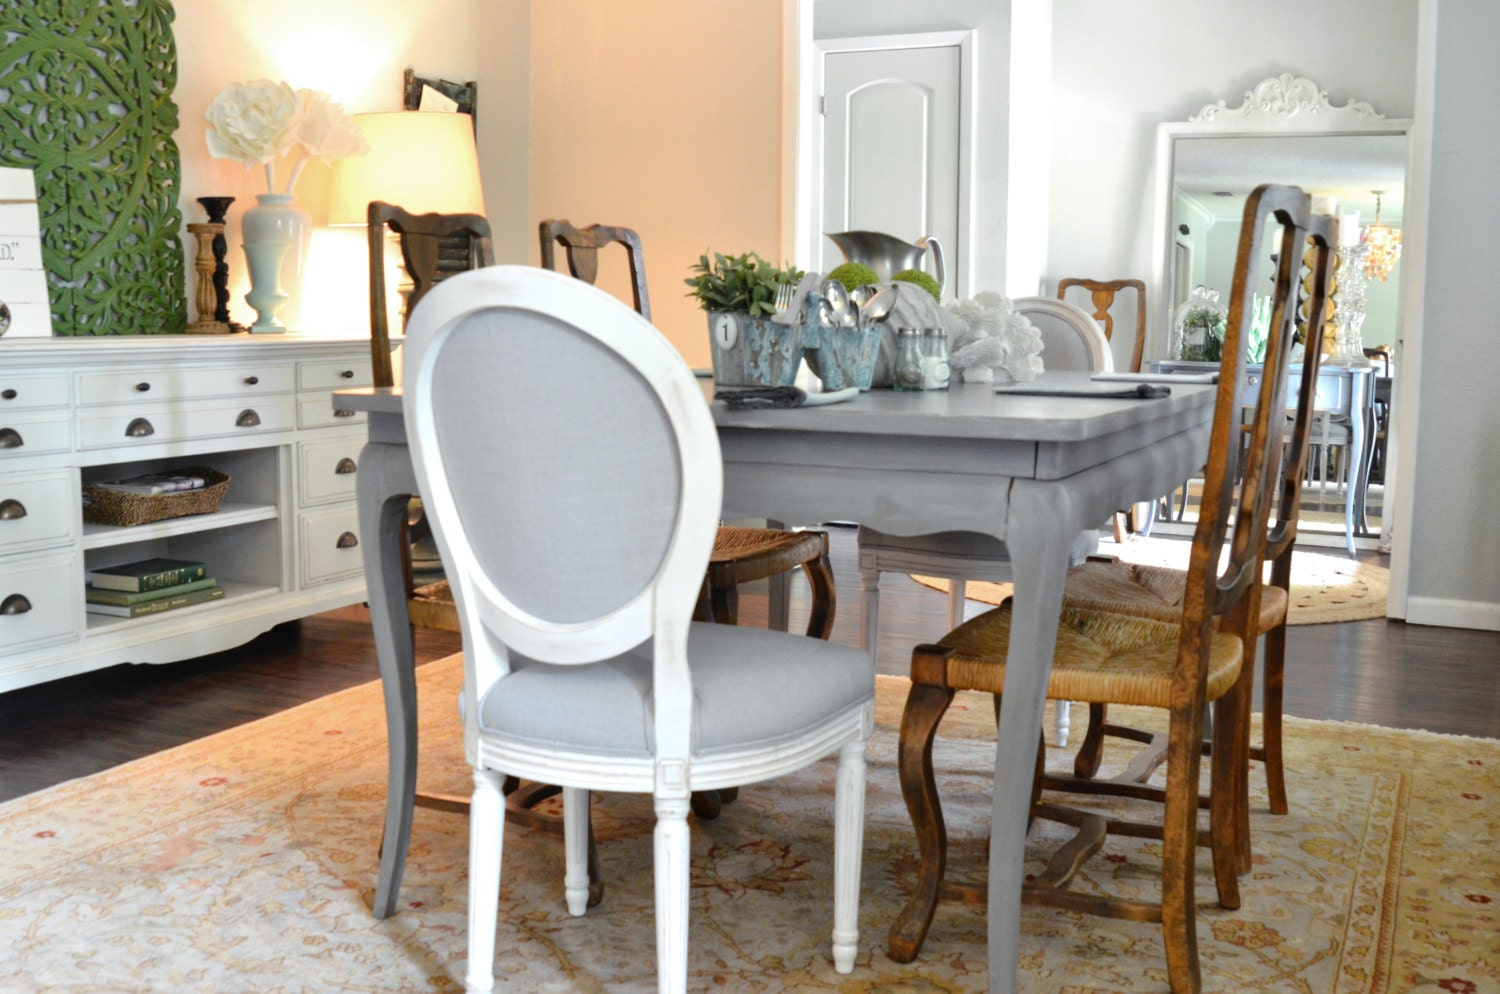 Bramante Extending Dining Table in grey  MADEcom